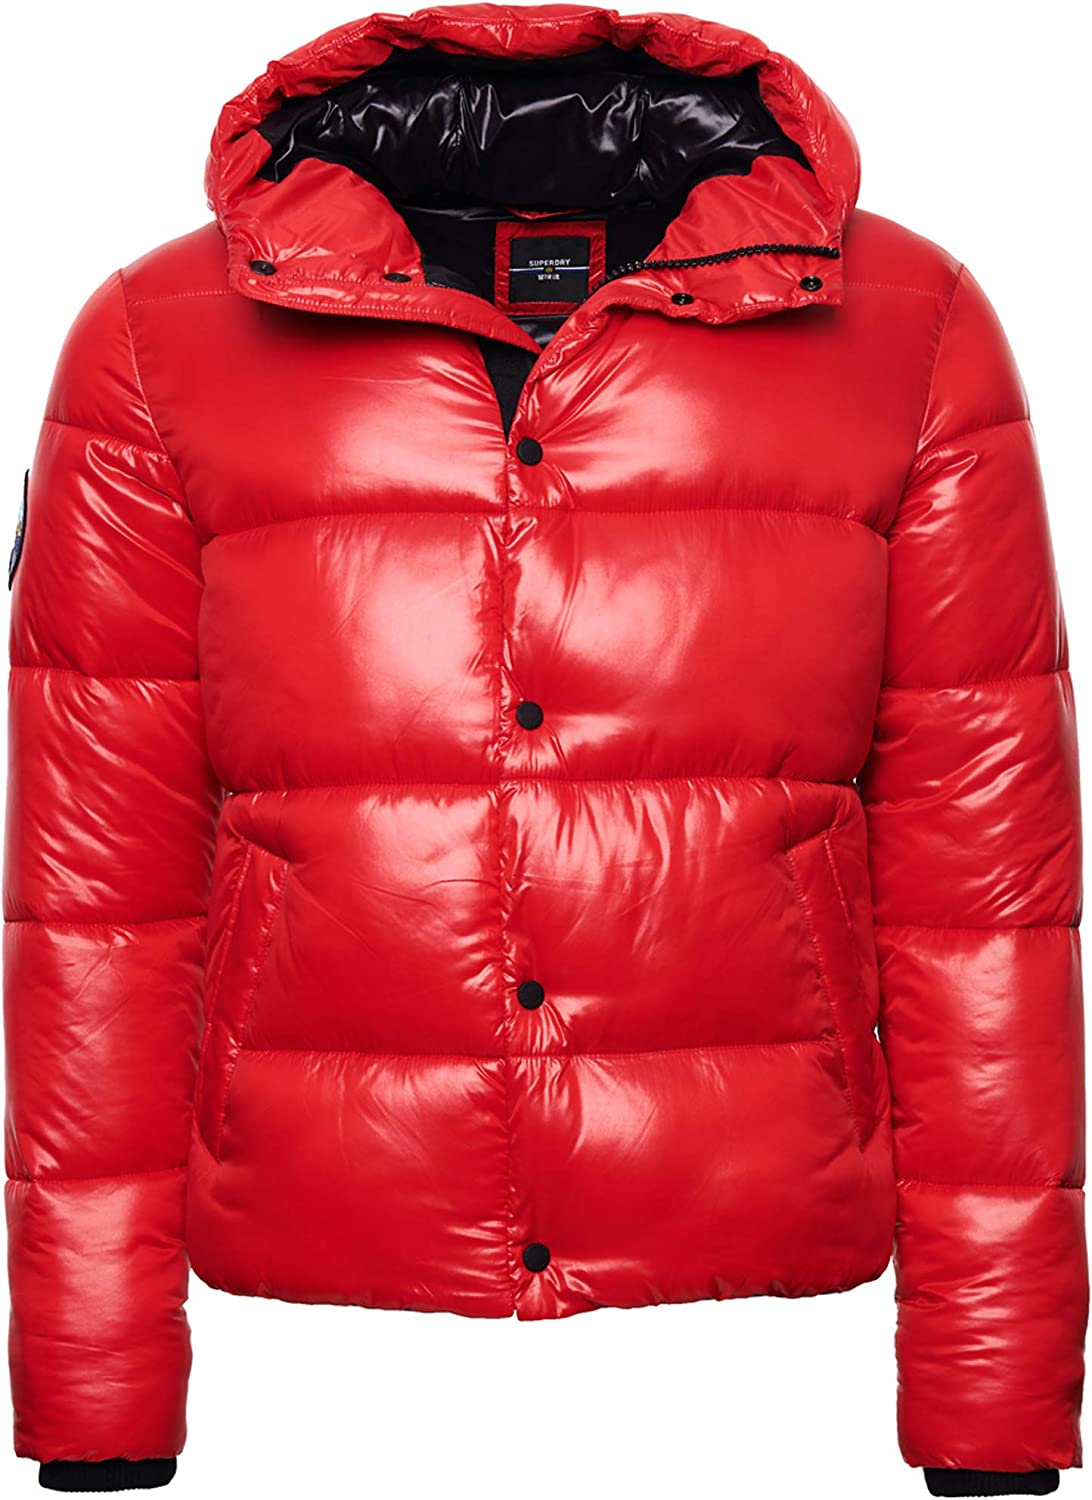 Superdry High Max 85% OFF Shine Padded We OFFer at cheap prices Jacket